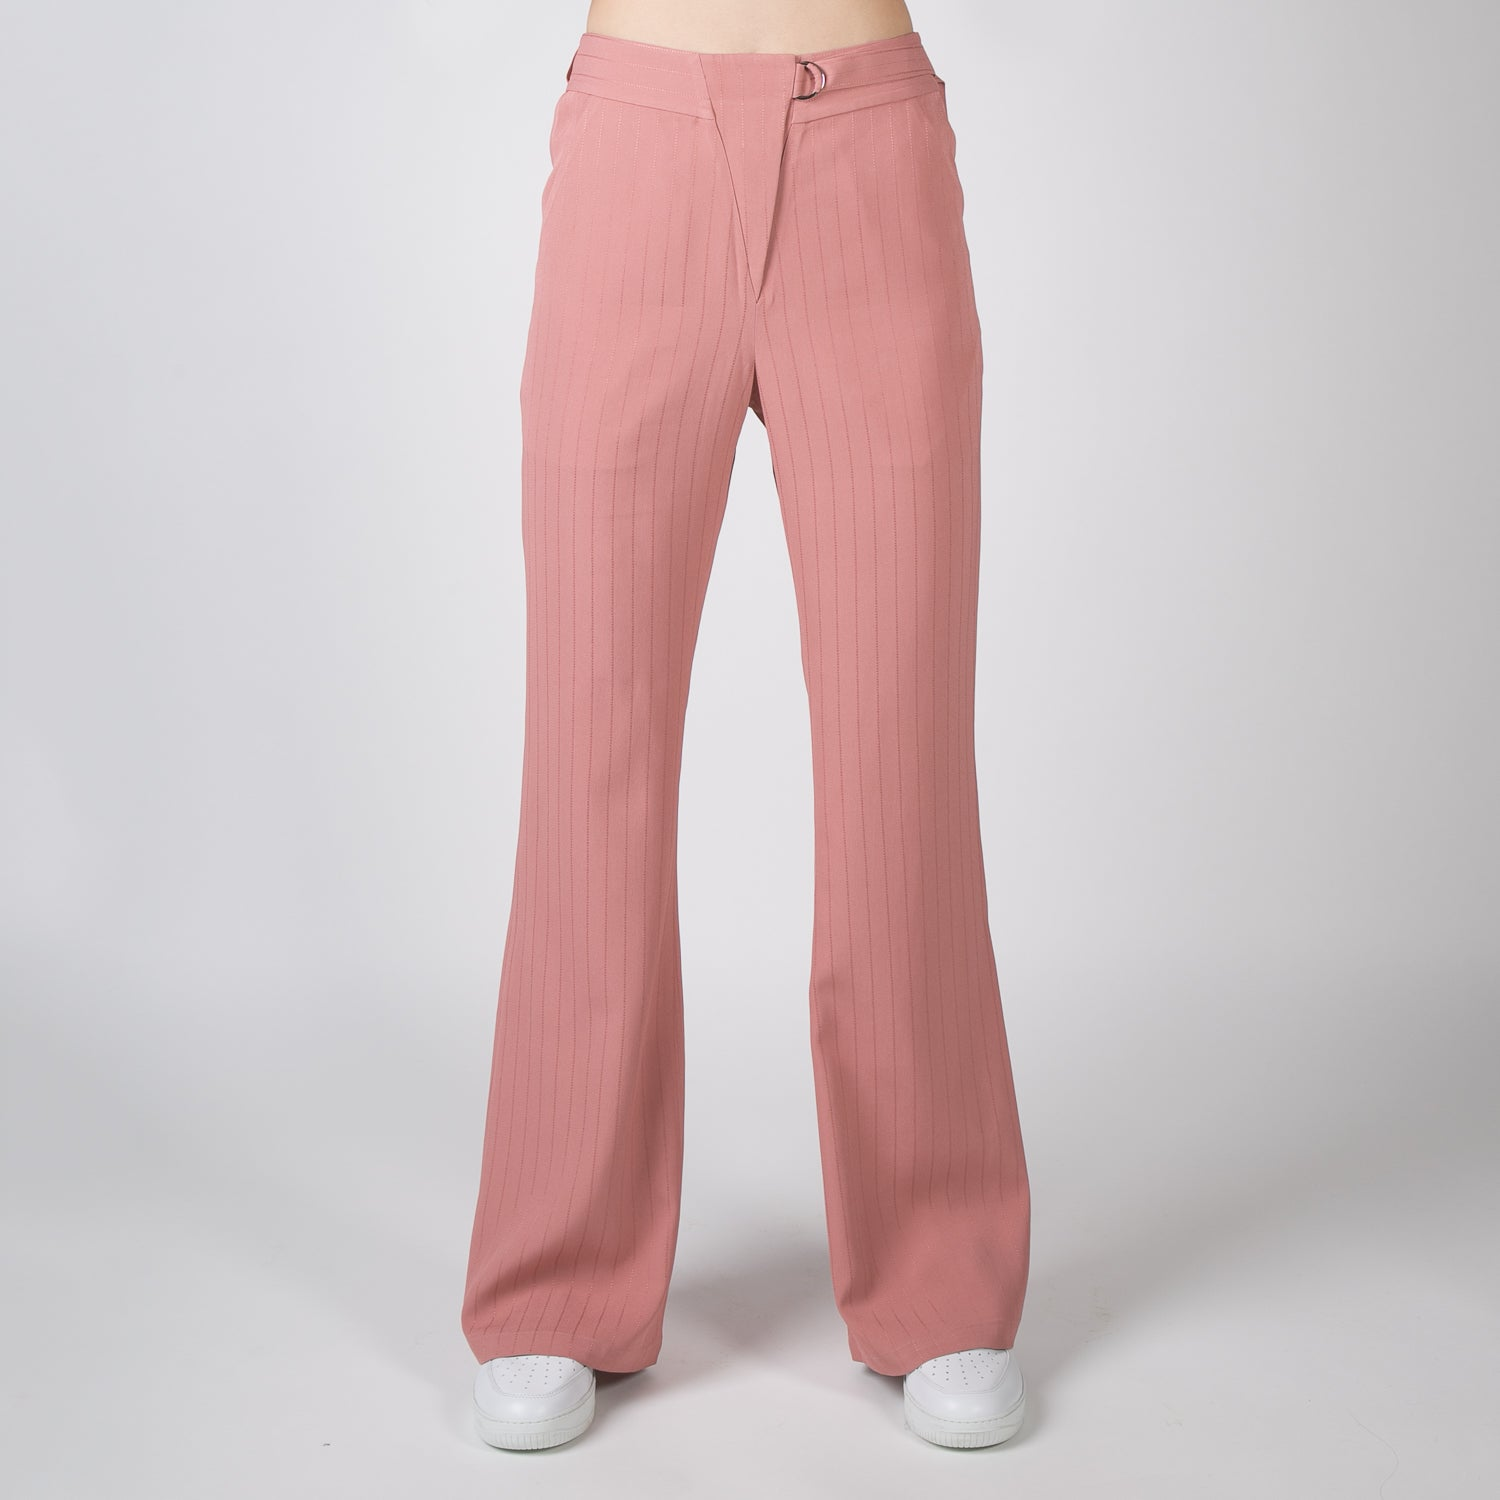 casual pink stripe pants by Dawei at Secret Location